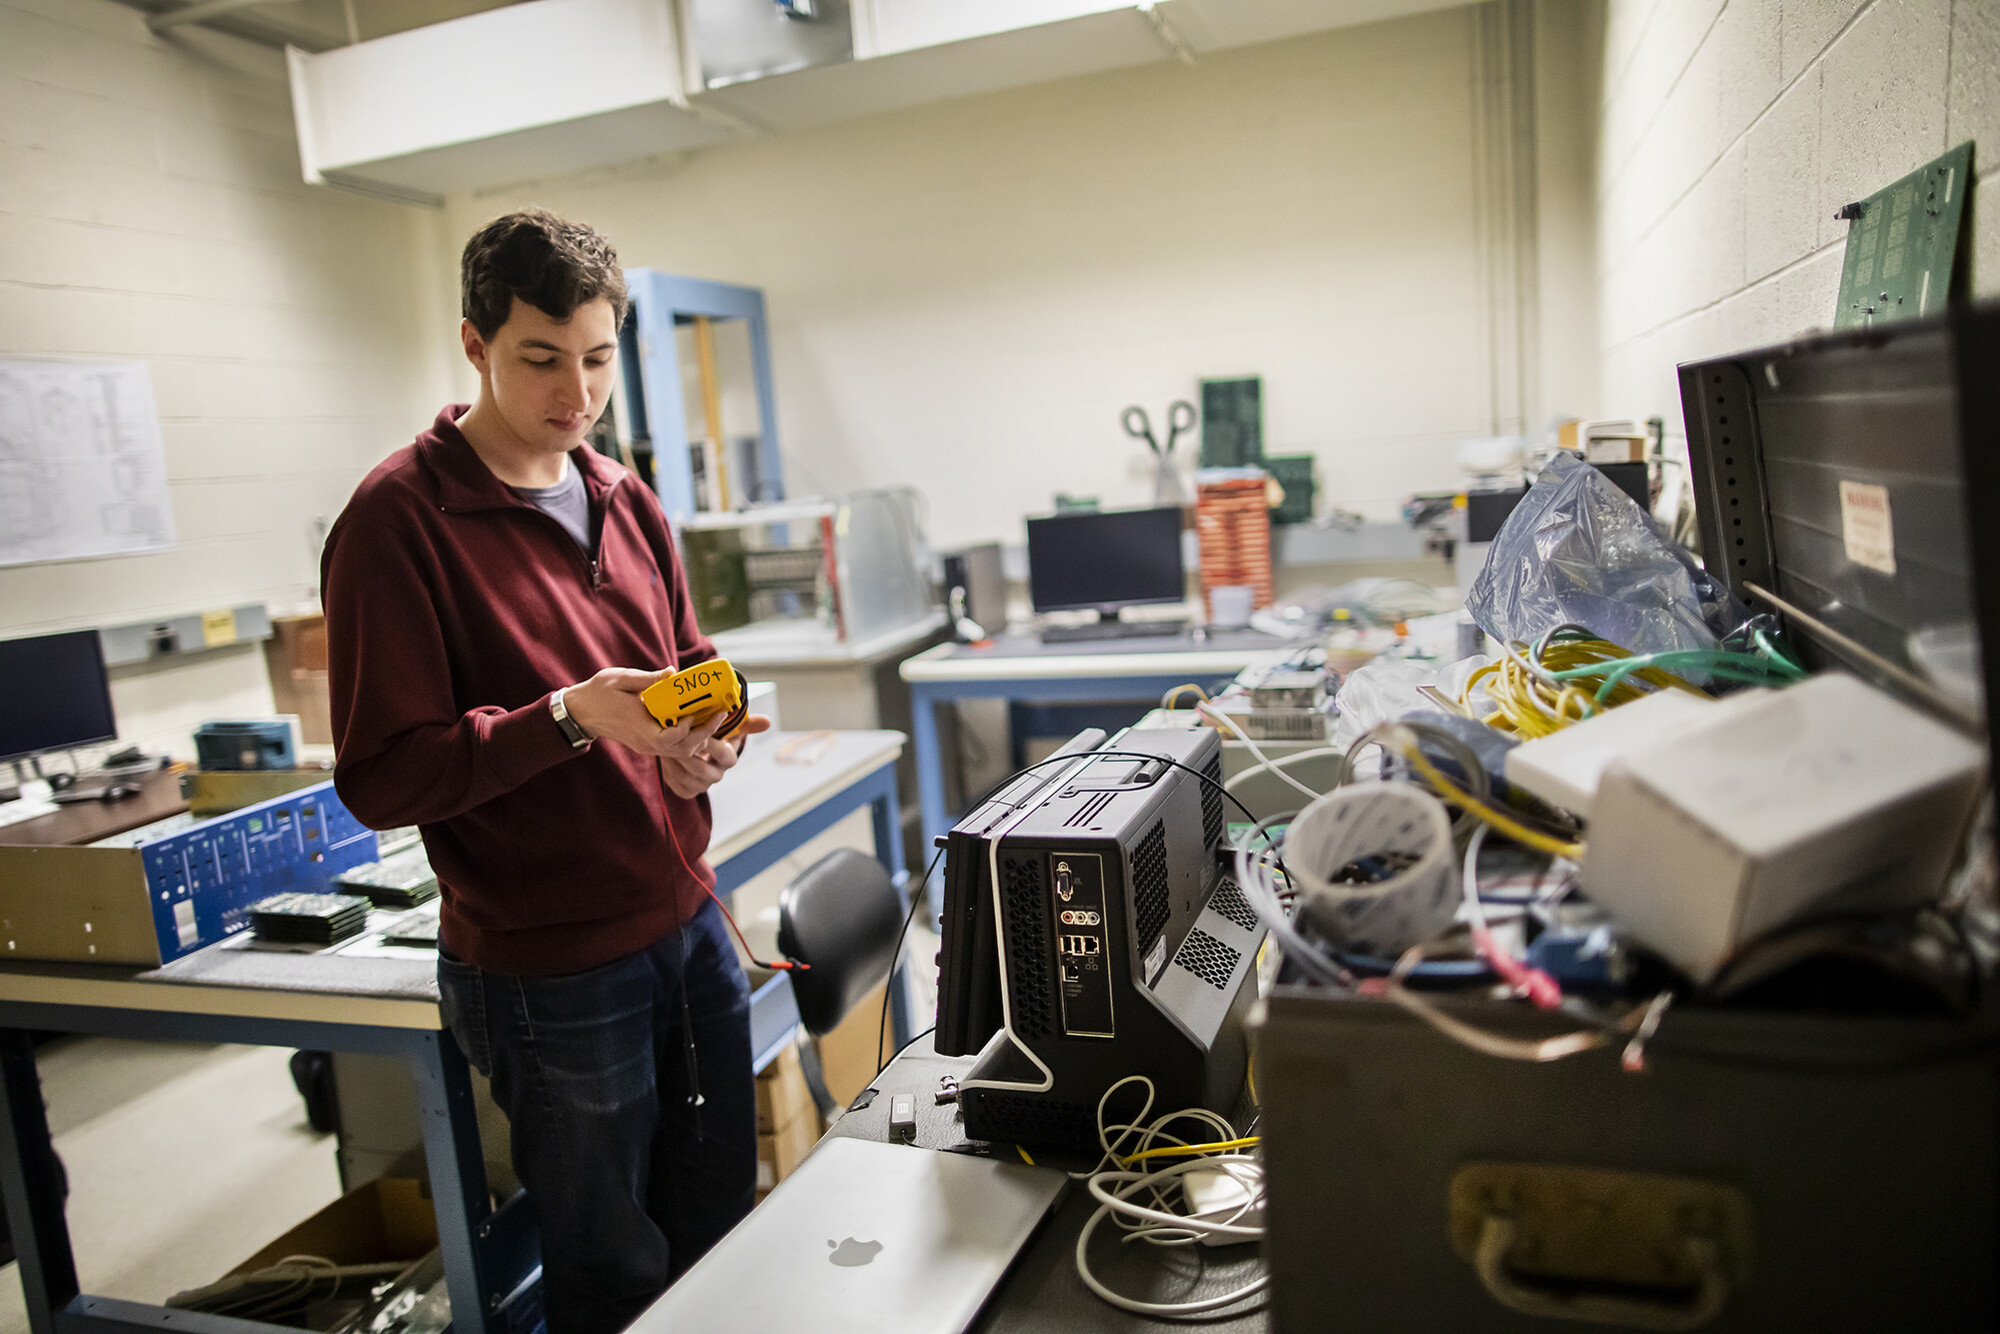 Marzec and his colleagues in the Klein lab regularly test and repair electronics for the SNO detector.